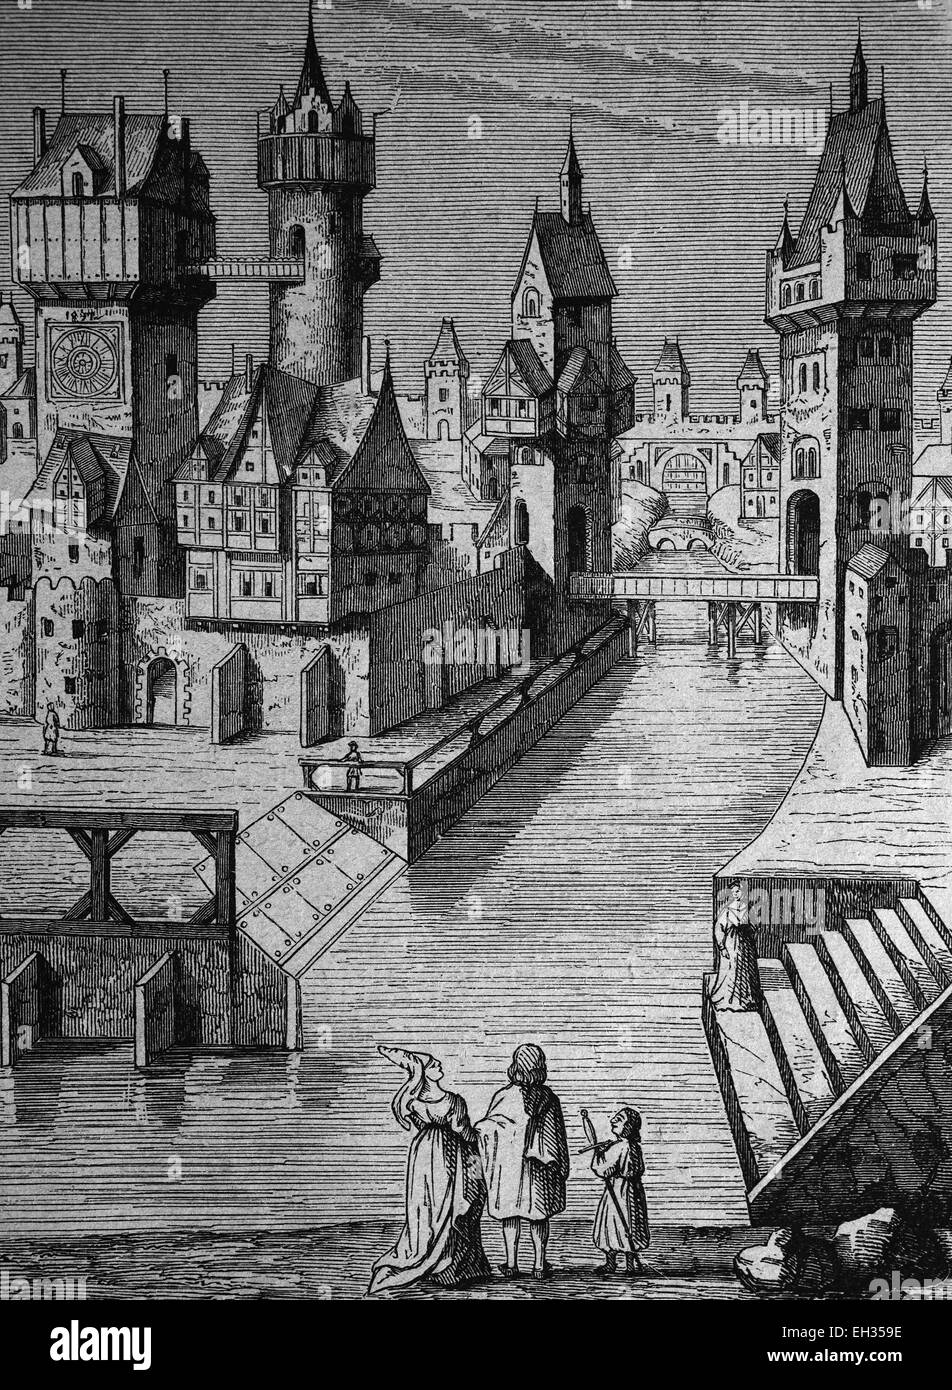 Ideal image of a city in the 14th century, woodcut 1888 - Stock Image